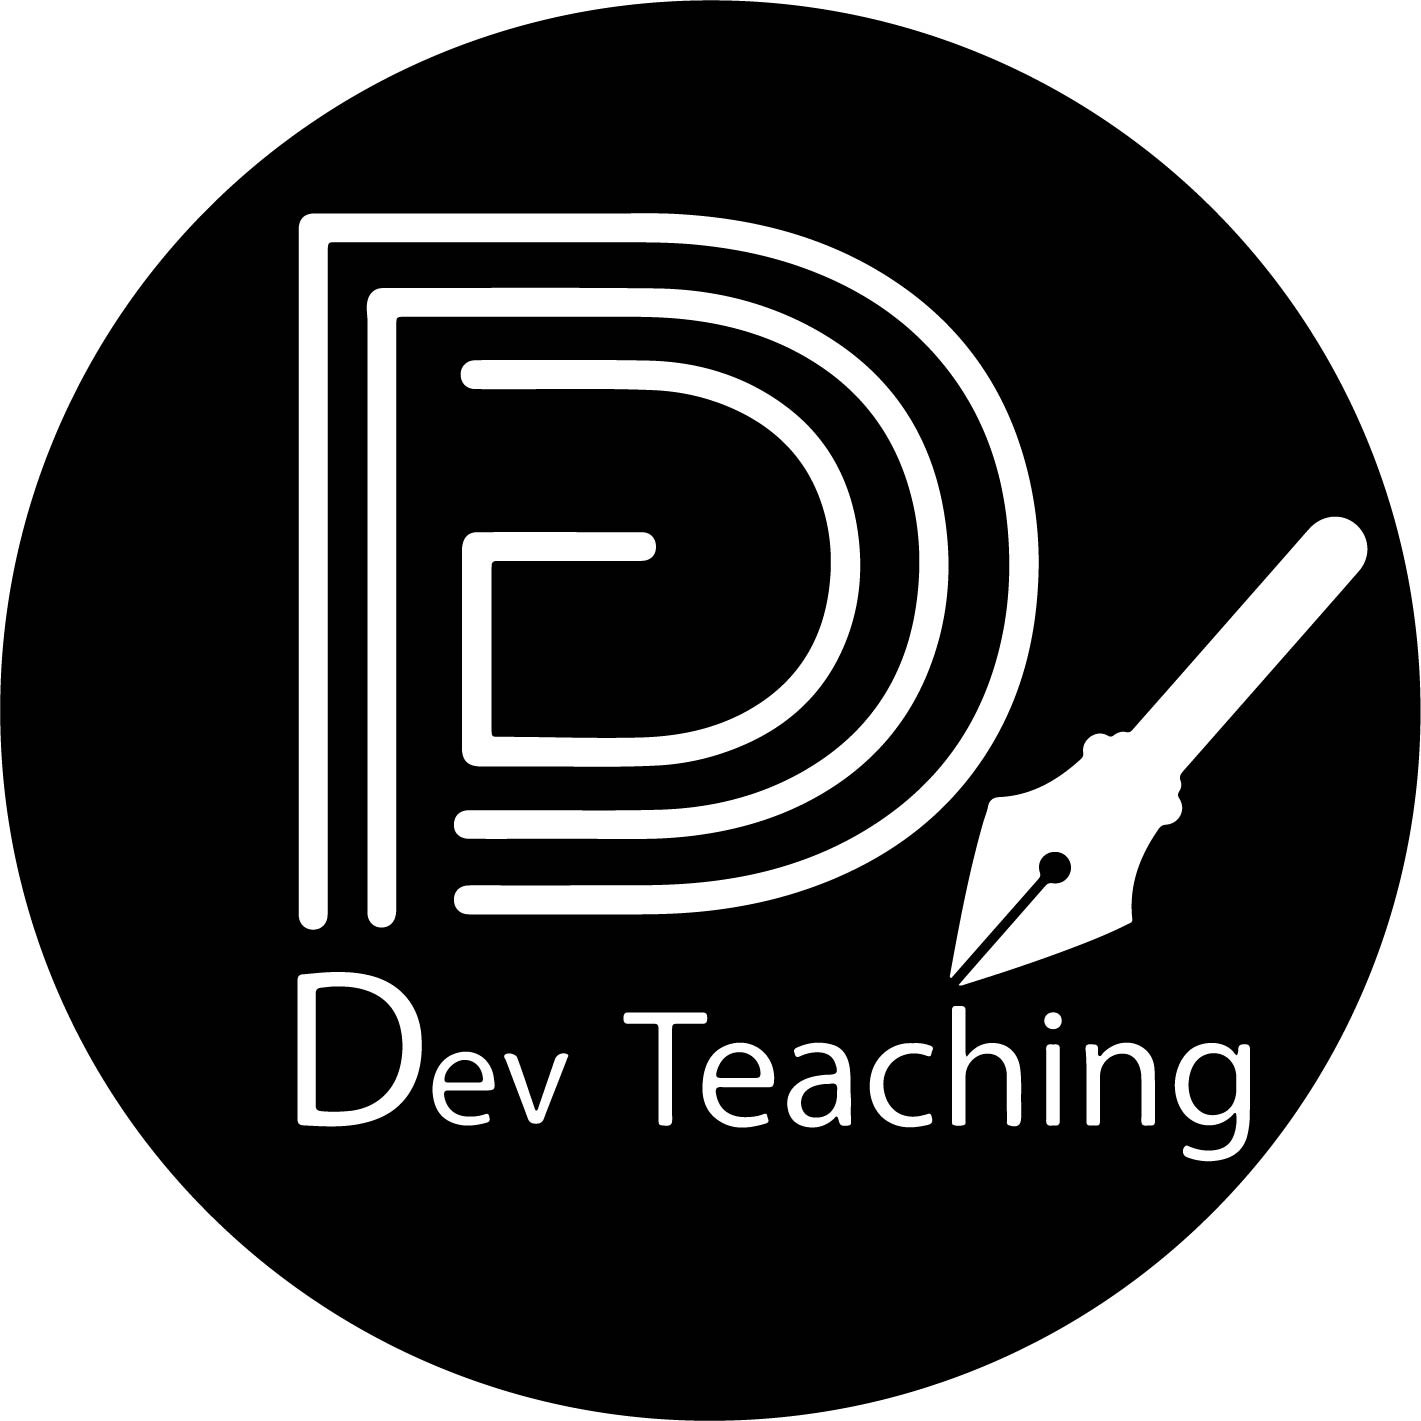 Dev Teching's profile picture